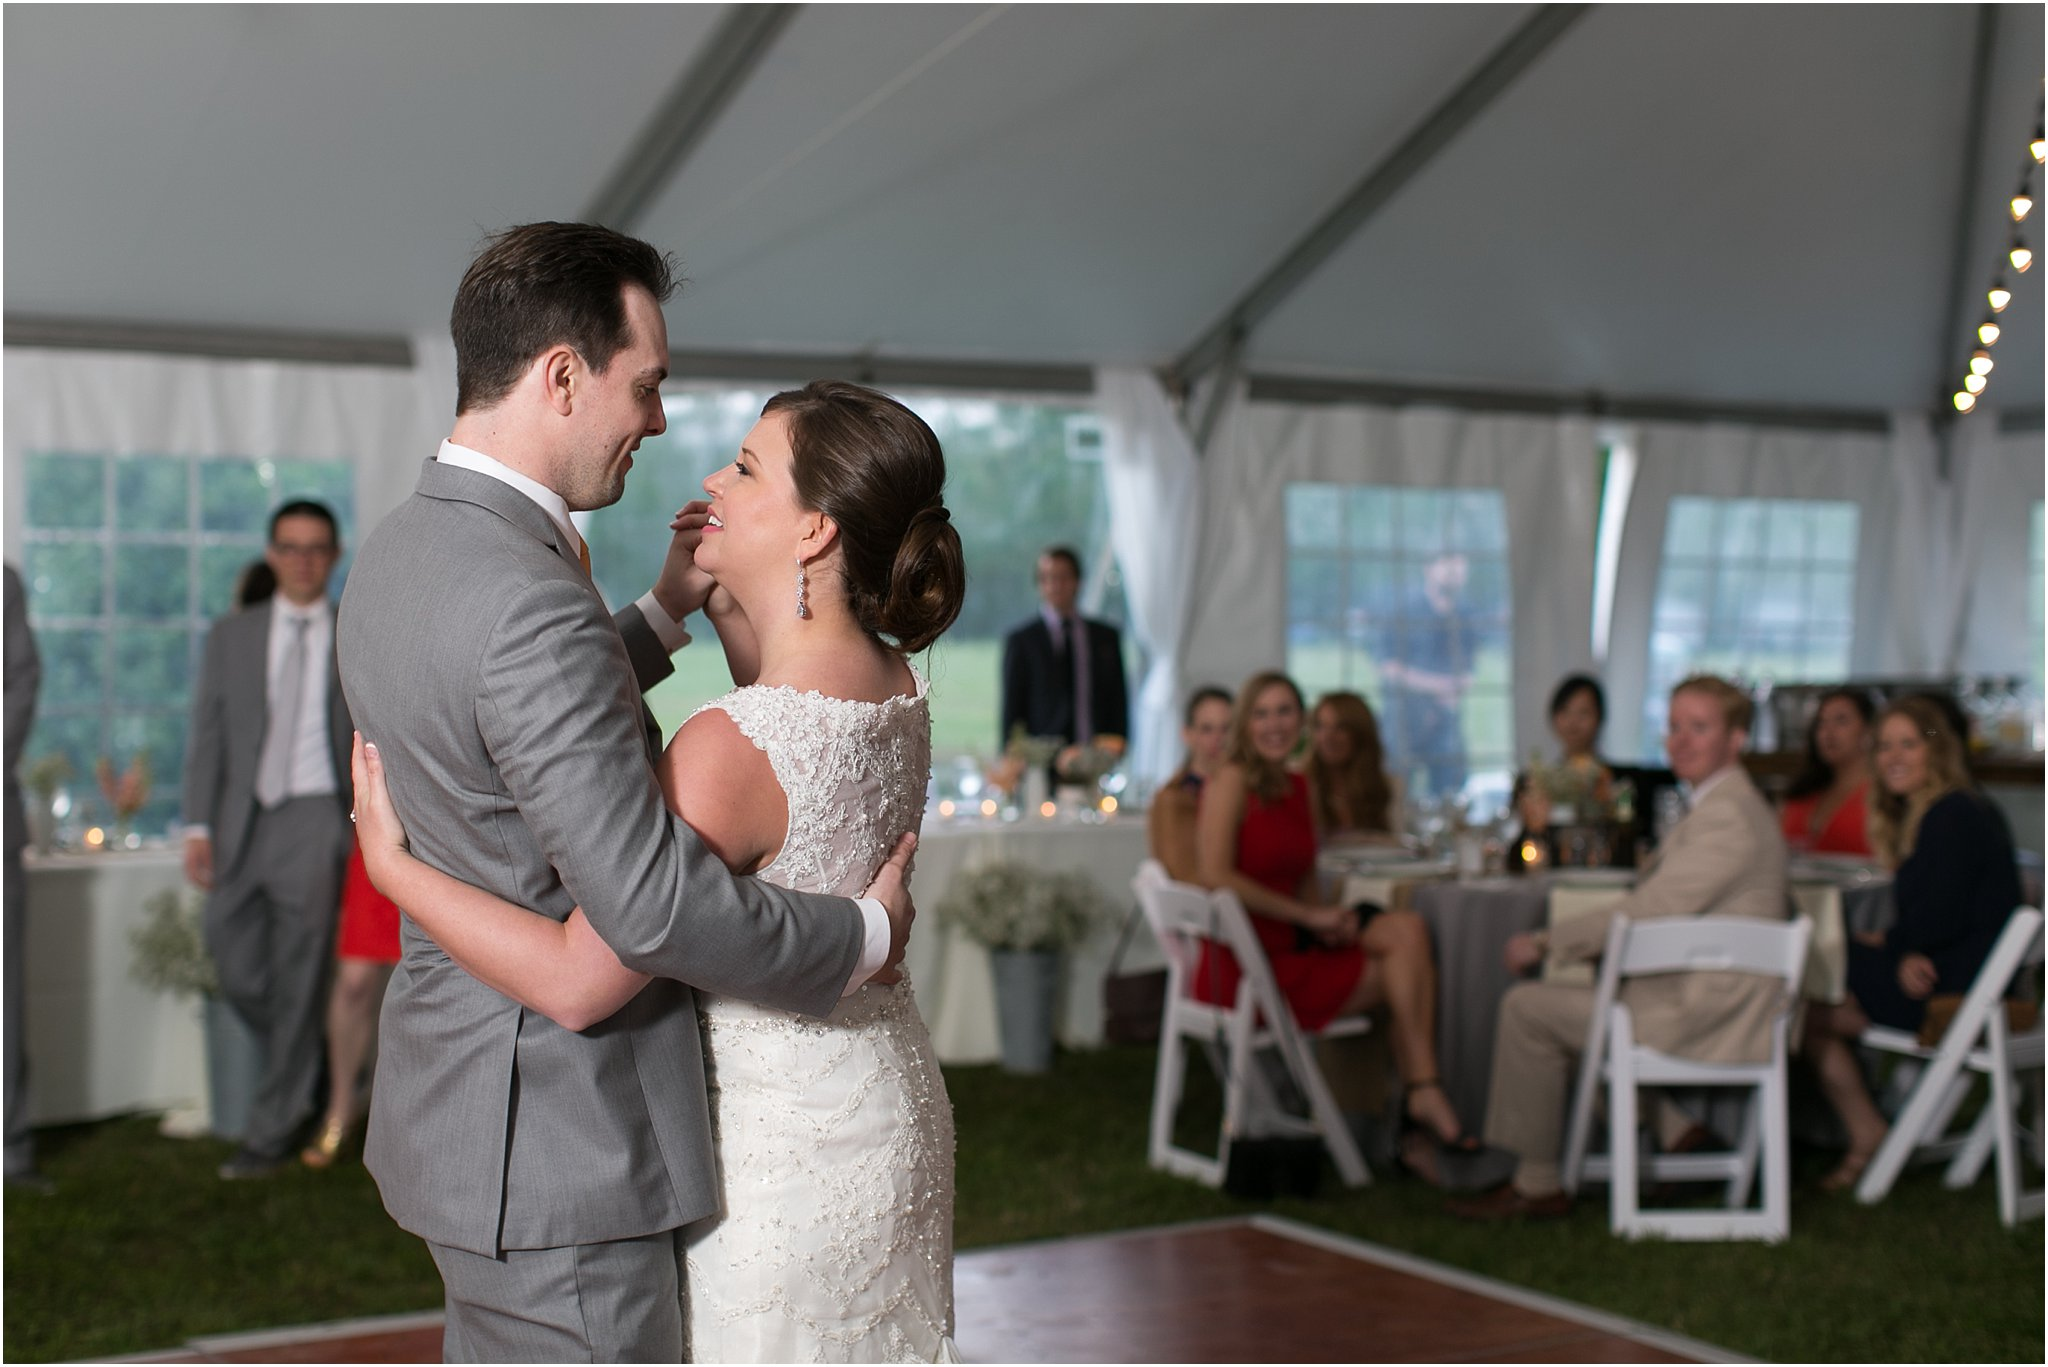 jessica_ryan_photography_holly_ridge_manor_wedding_roost_flowers_jamie_leigh_events_dhalia_edwards_candid_vibrant_wedding_colors_1356